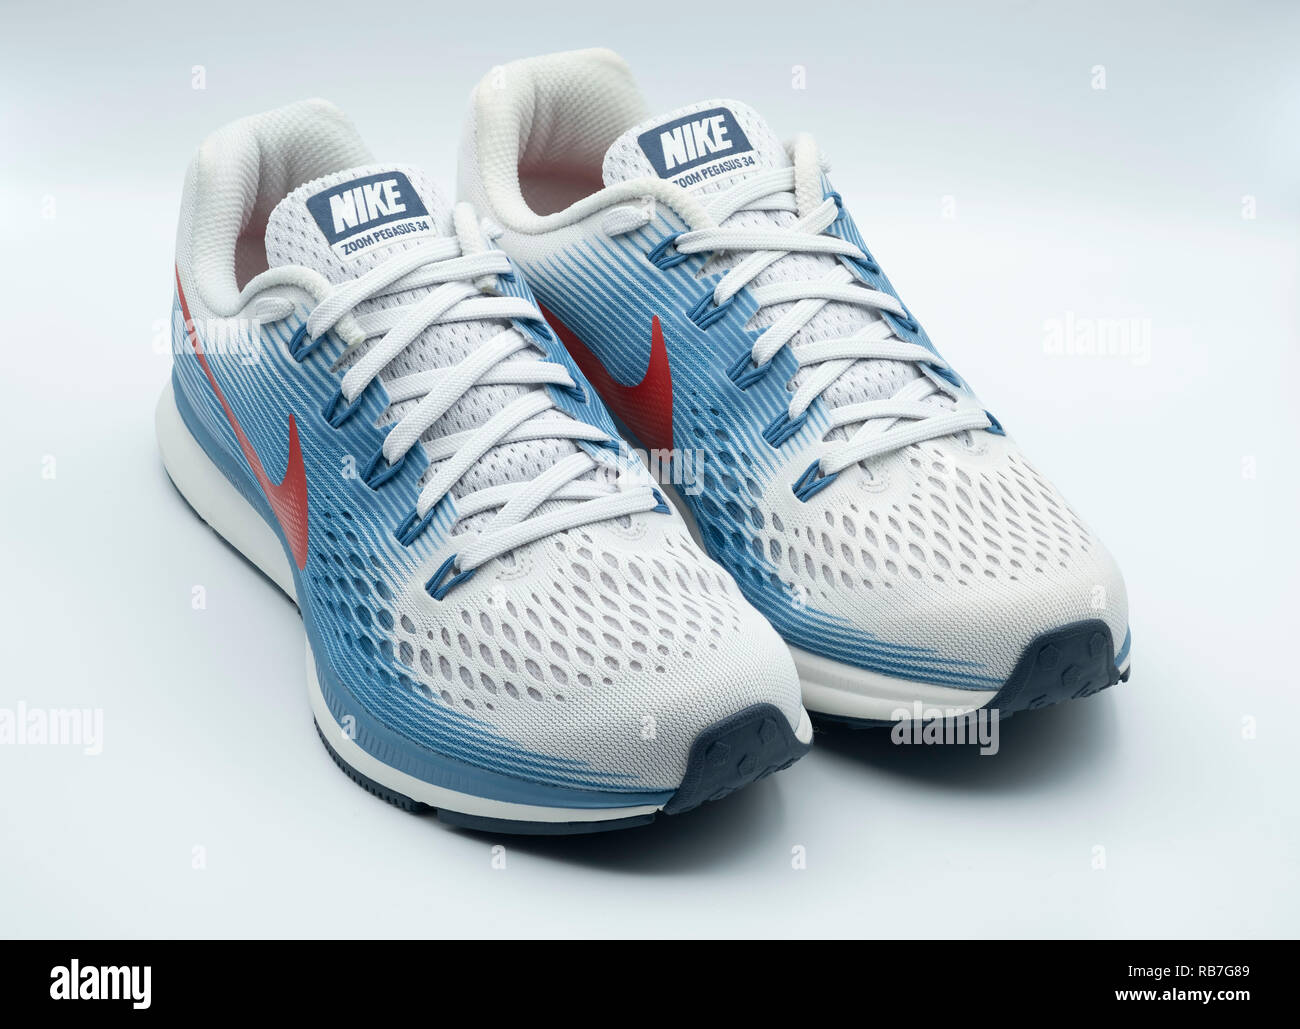 d1ce26e0924ce Running Shoes Sneakers Nike Stock Photos   Running Shoes Sneakers ...